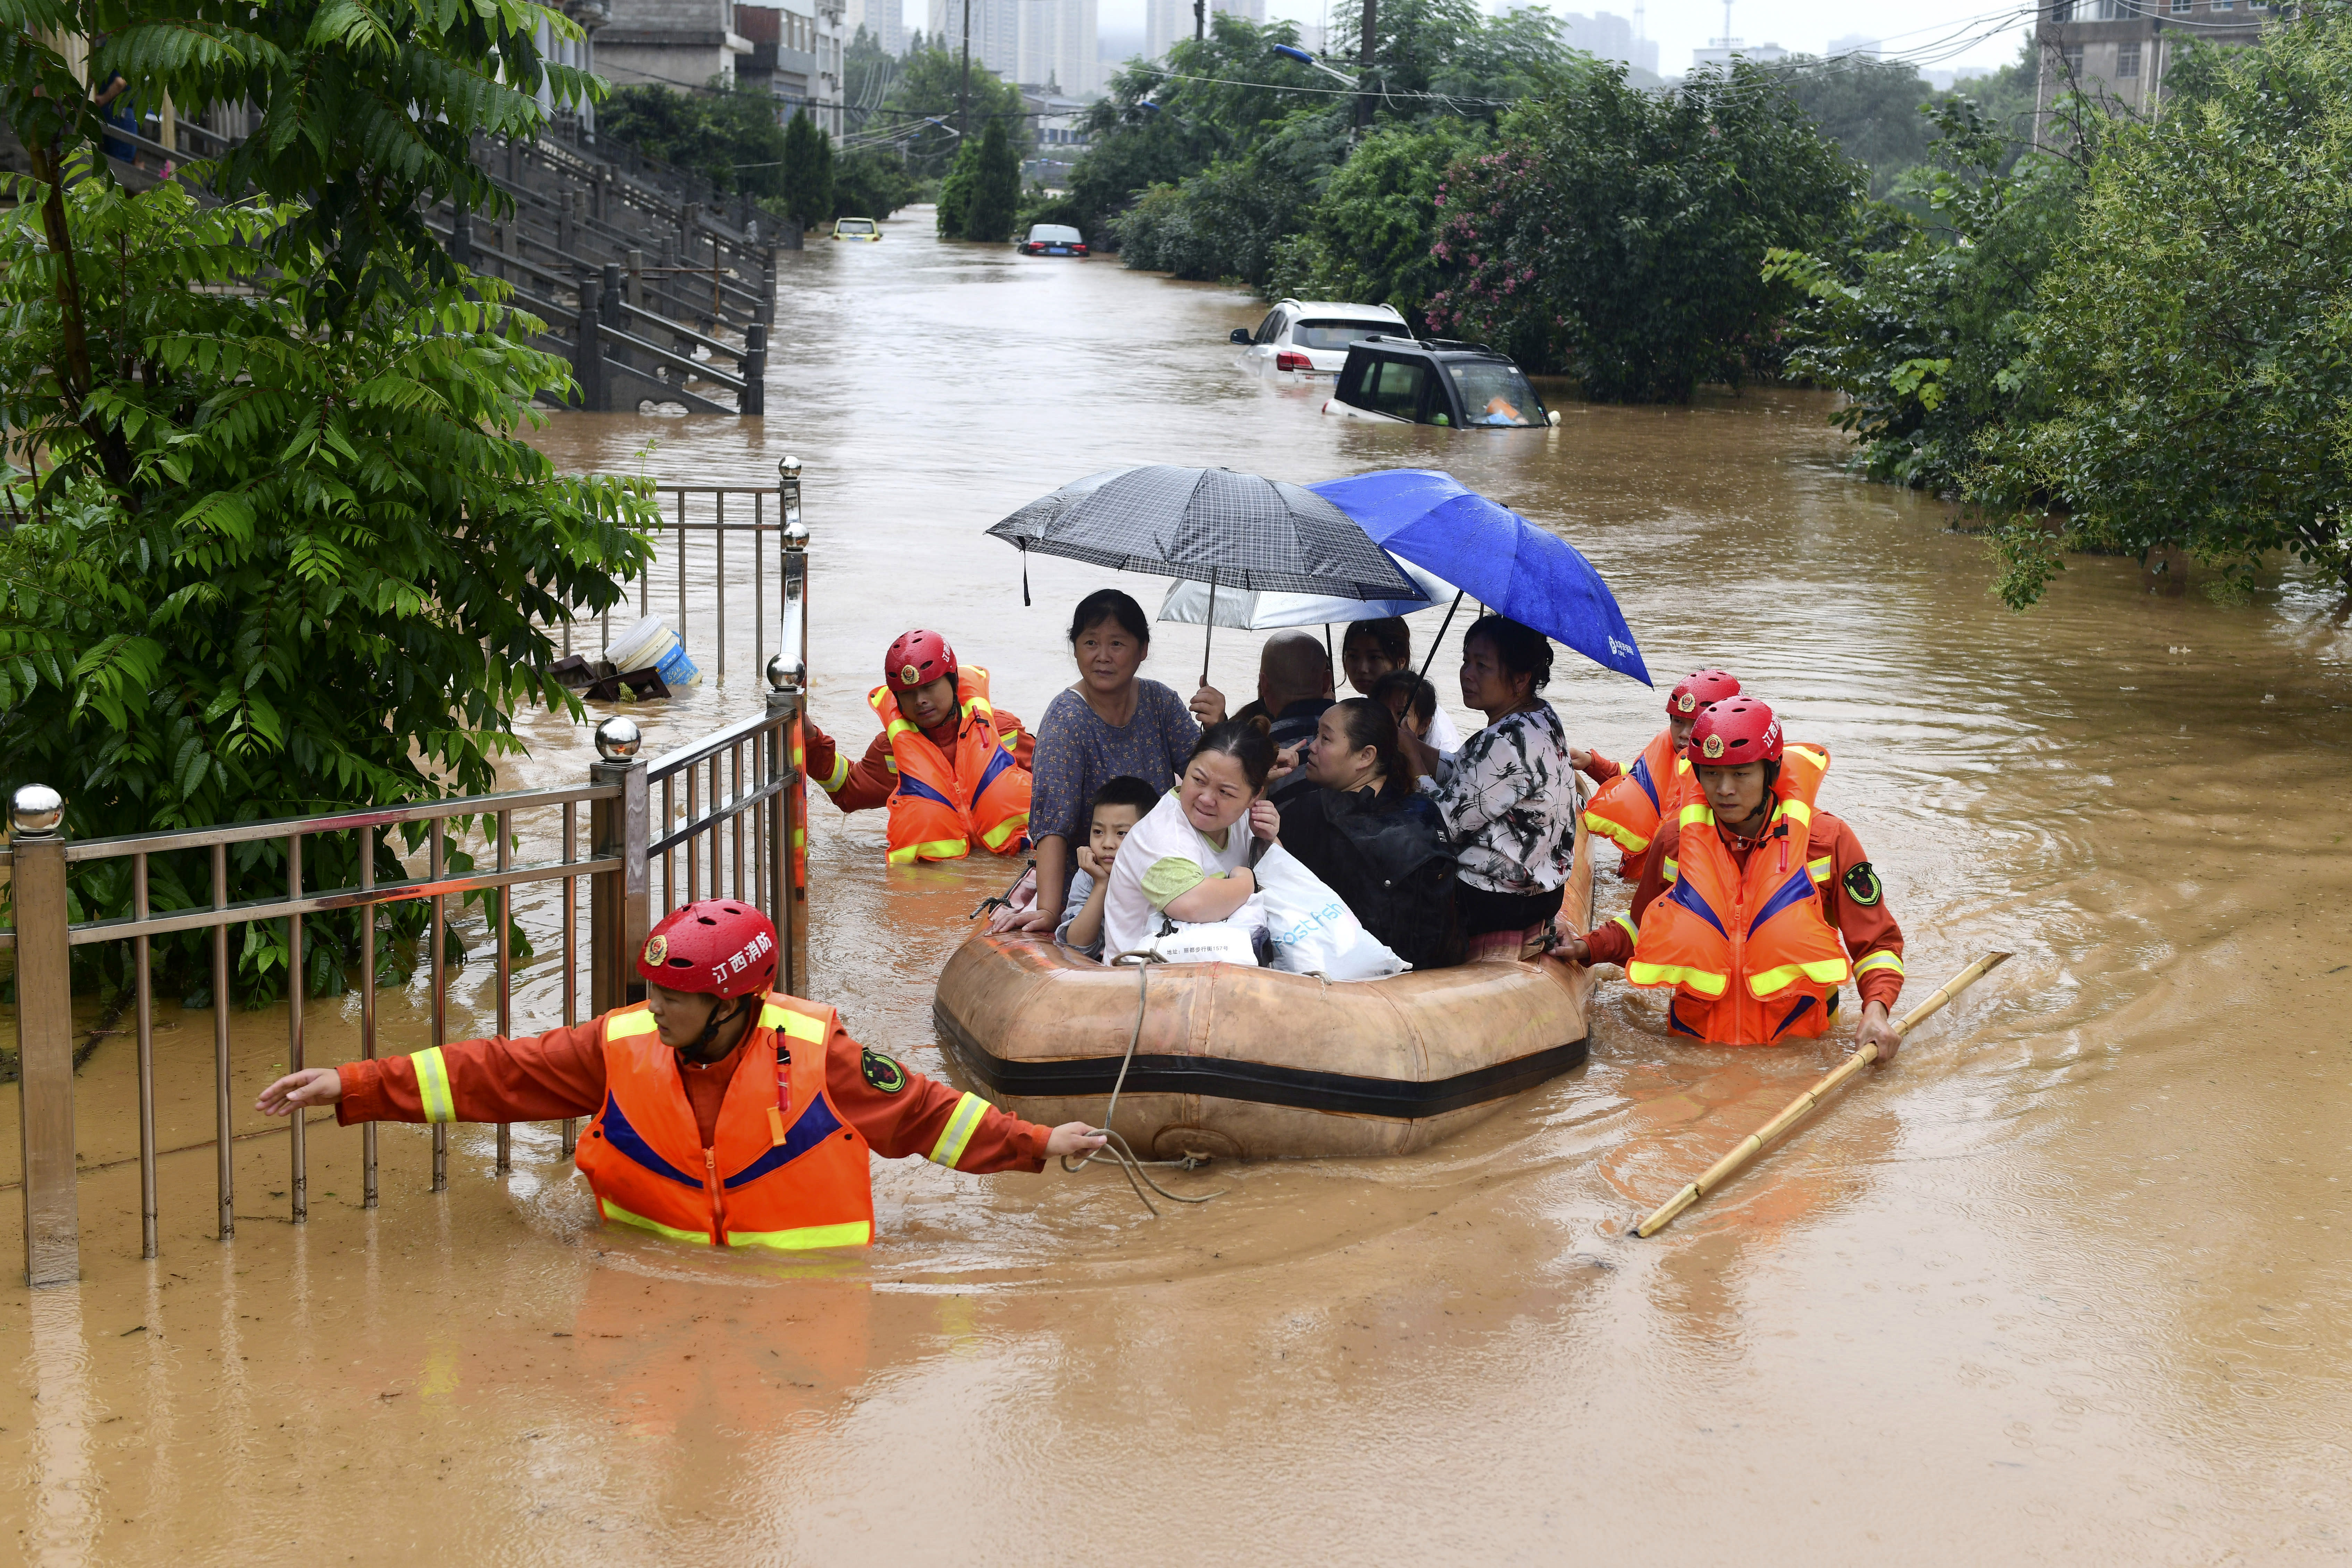 Rescuers evacuate residents on a raft through flood waters in Jiujiang in central China's Jiangxi province Wednesday, July 8, 2020. Rescuers in central China were searching Wednesday for people left missing in a landslide triggered amid widespread flooding across much of the country. (Chinatopix Via AP)